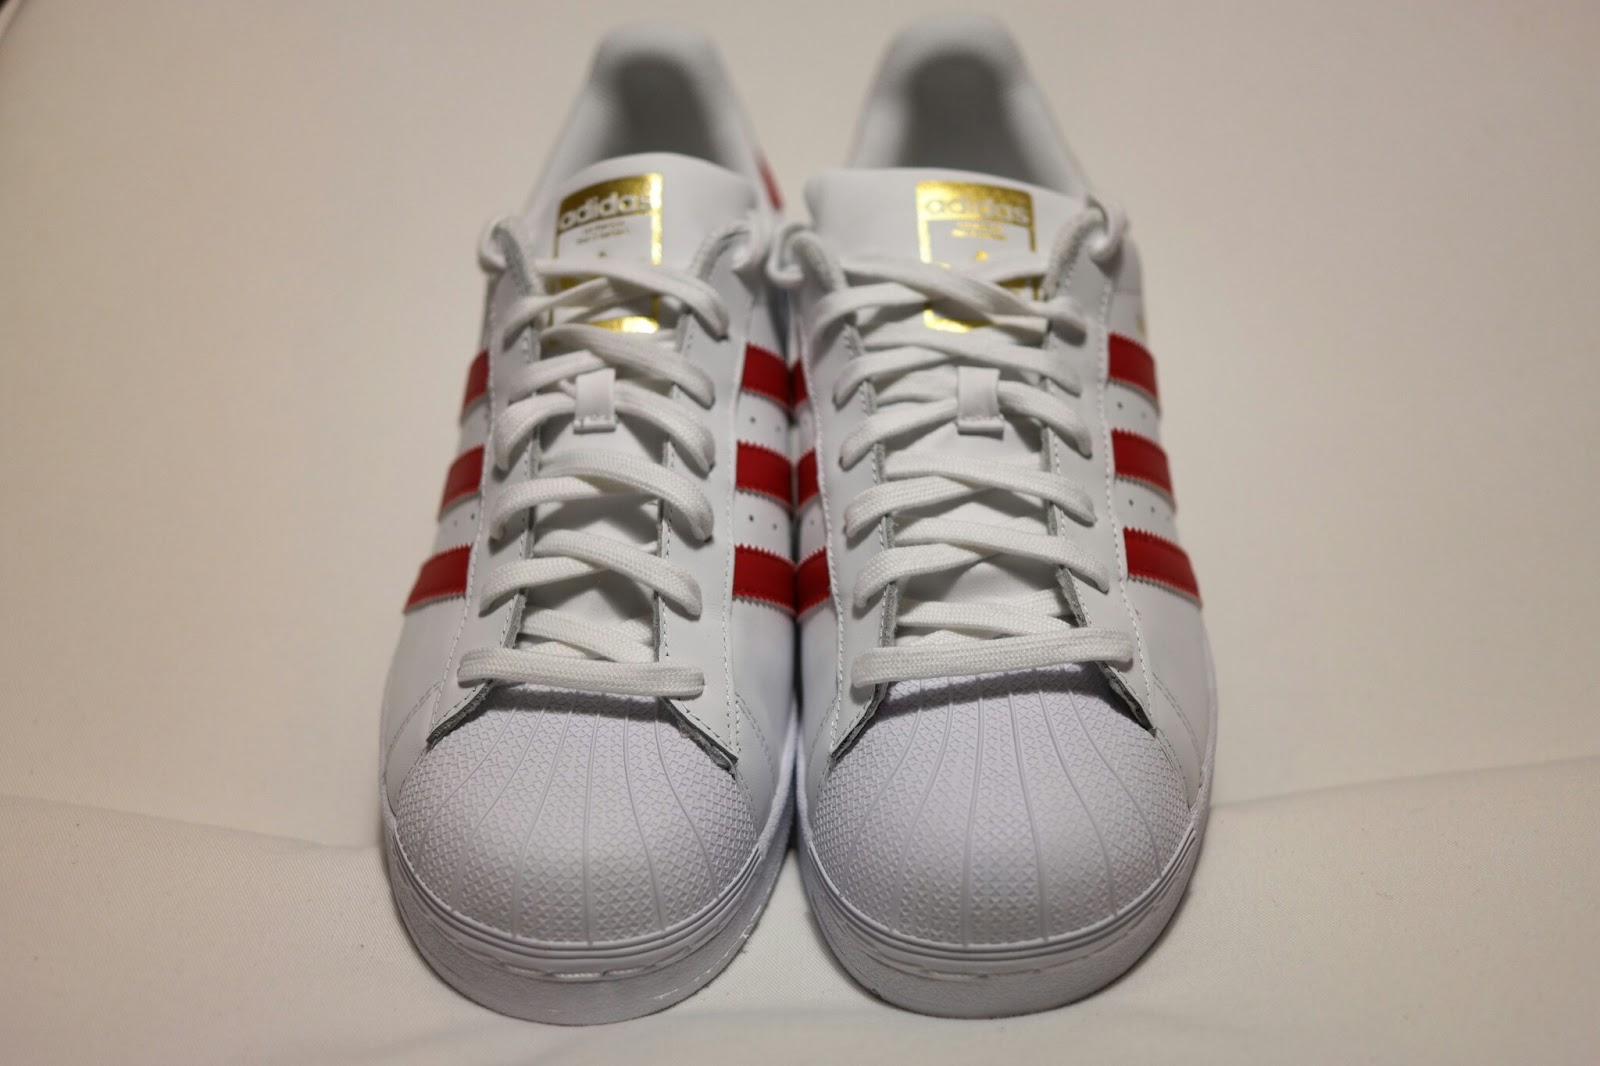 ADIDAS SUPERSTAR BEI FOOT LOCKER - IT MUST BE FEBRUARY | 12 PICS